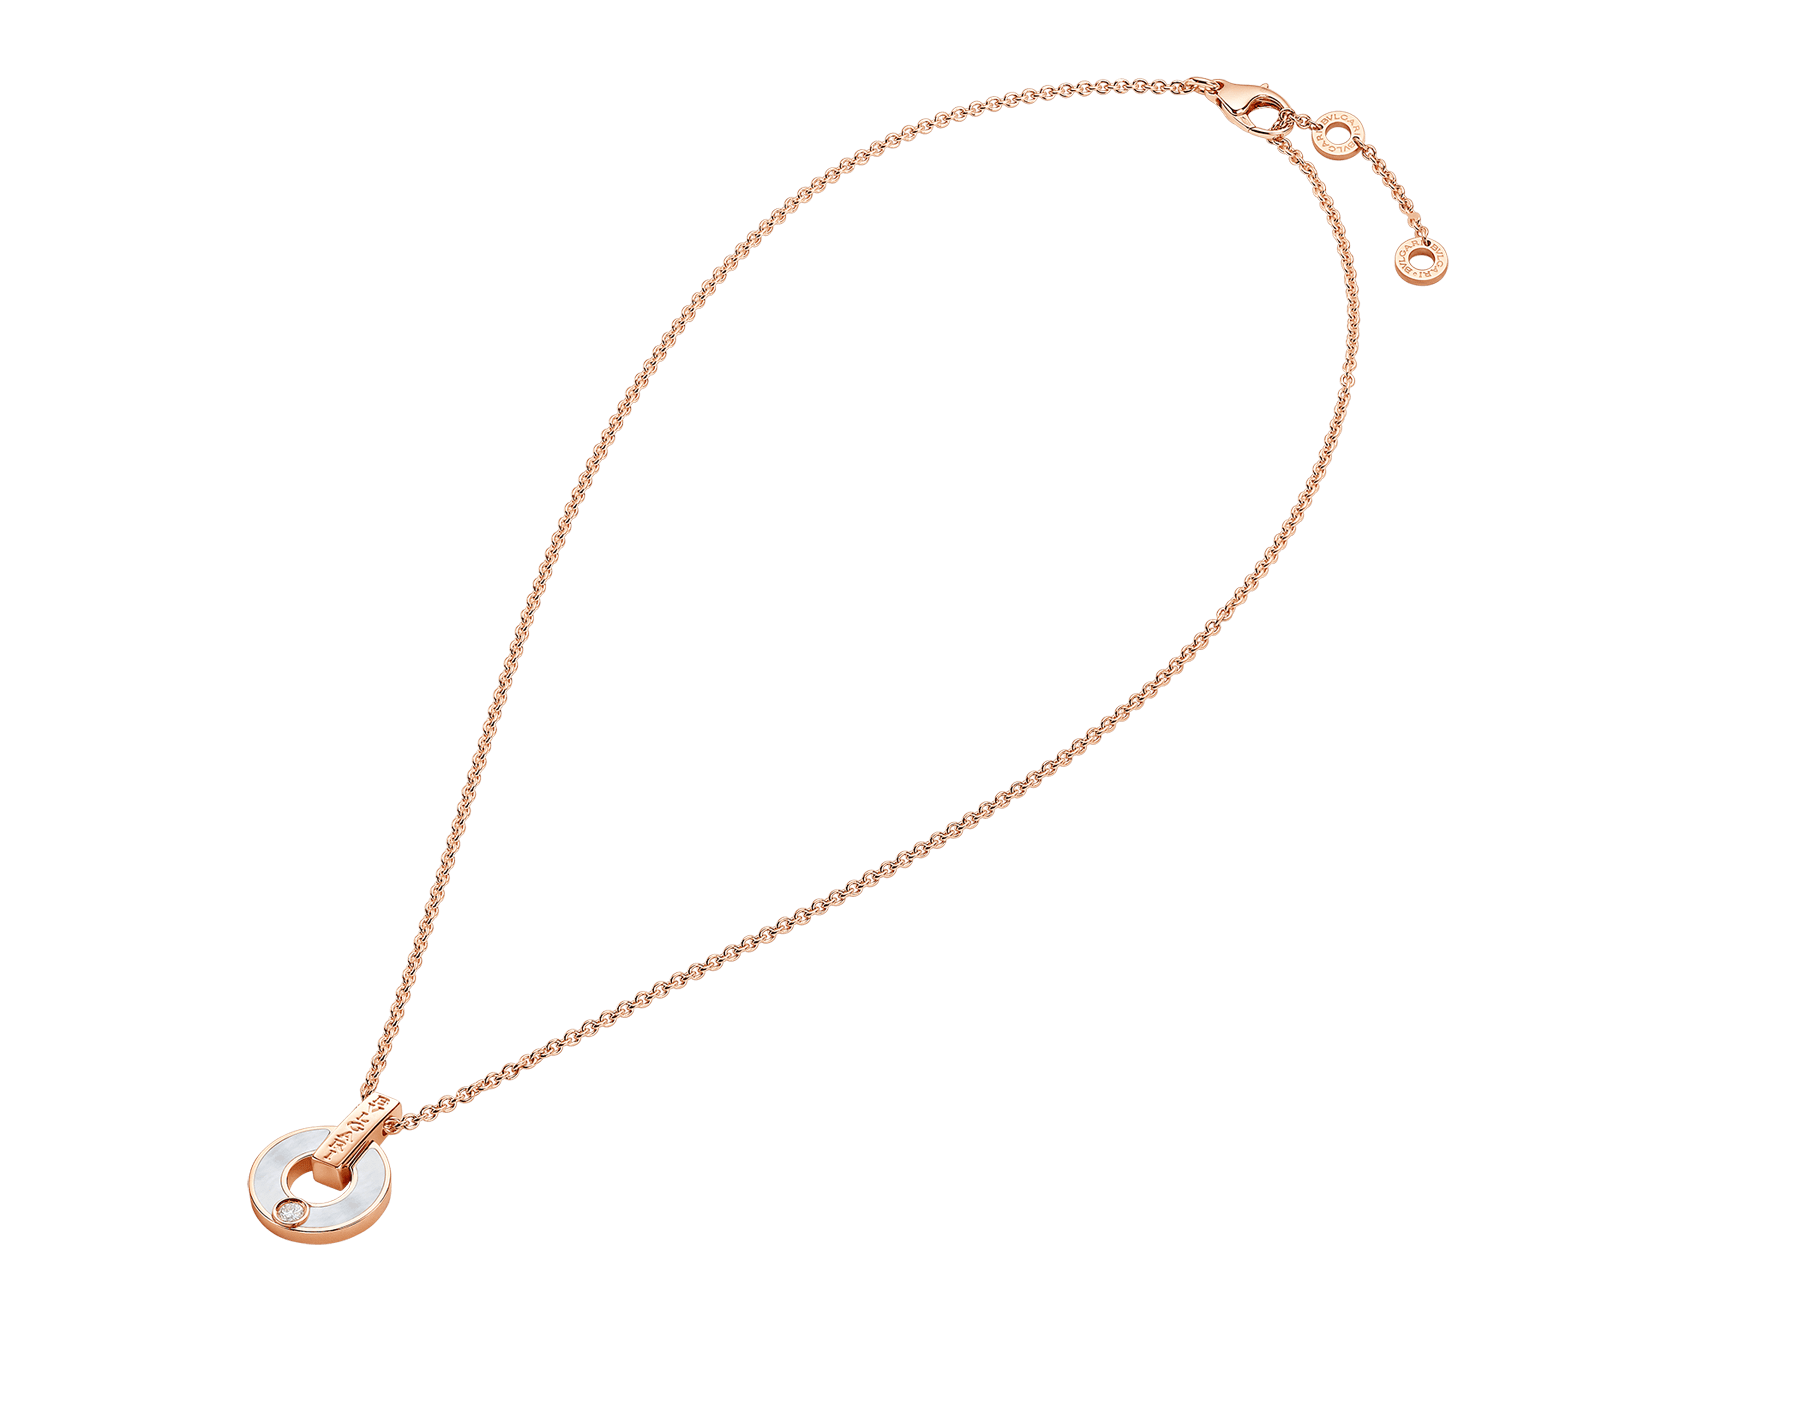 BVLGARI BVLGARI openwork 18 kt rose gold necklace set with mother-of-pearl elements and a round brilliant-cut diamond 357546 image 2